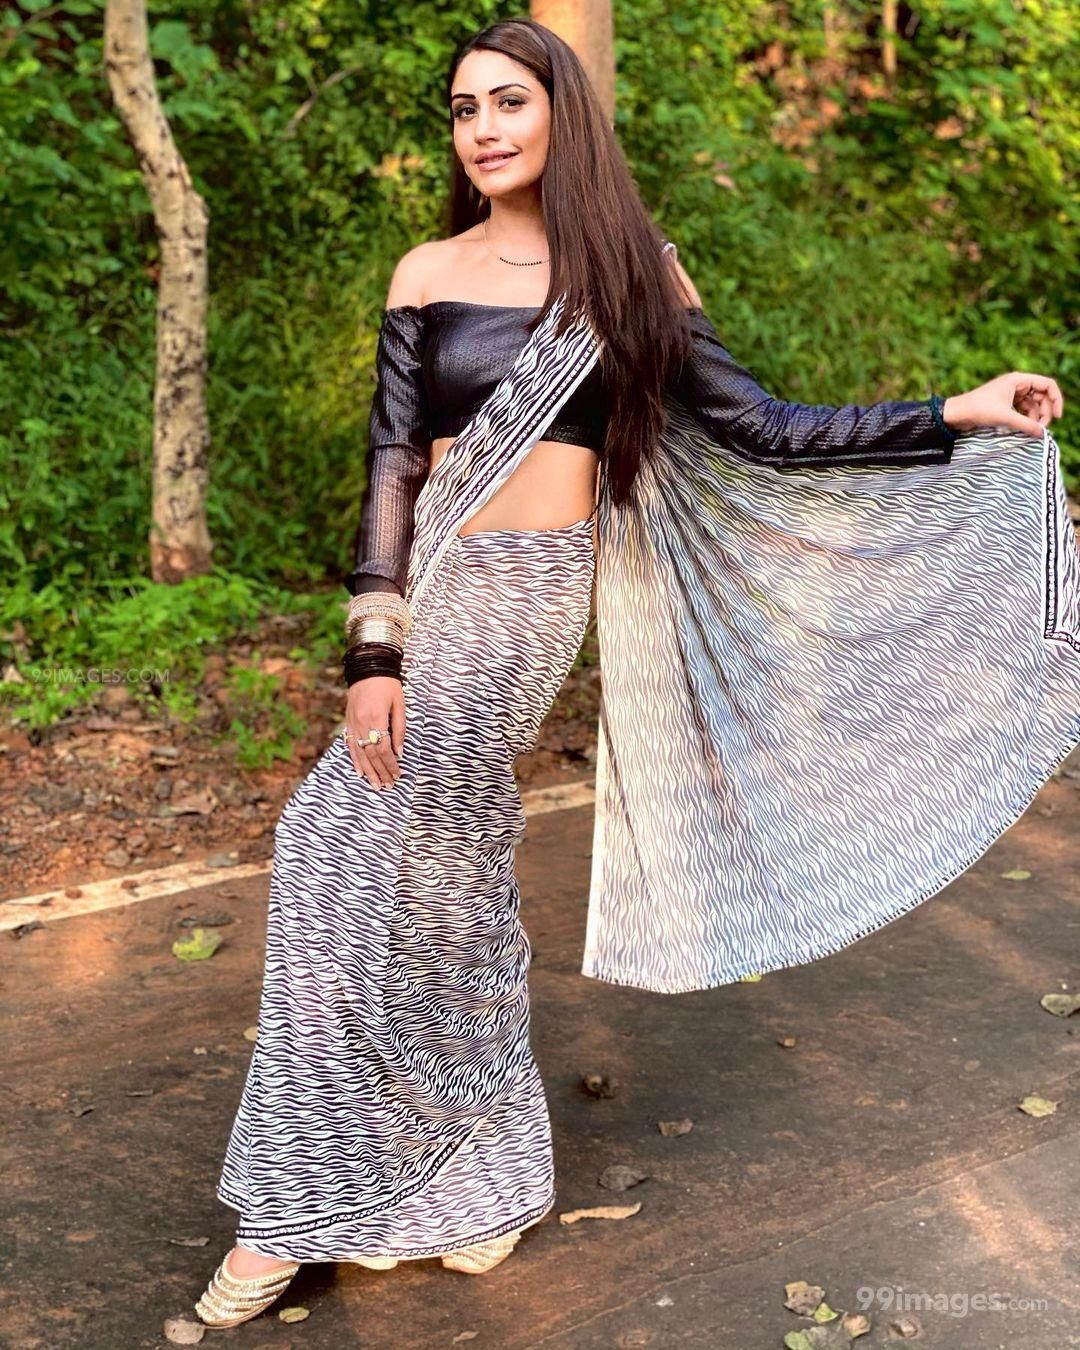 Surbhi Chandna  Hot HD Photos & Wallpapers for mobile Download, WhatsApp DP (1080p)